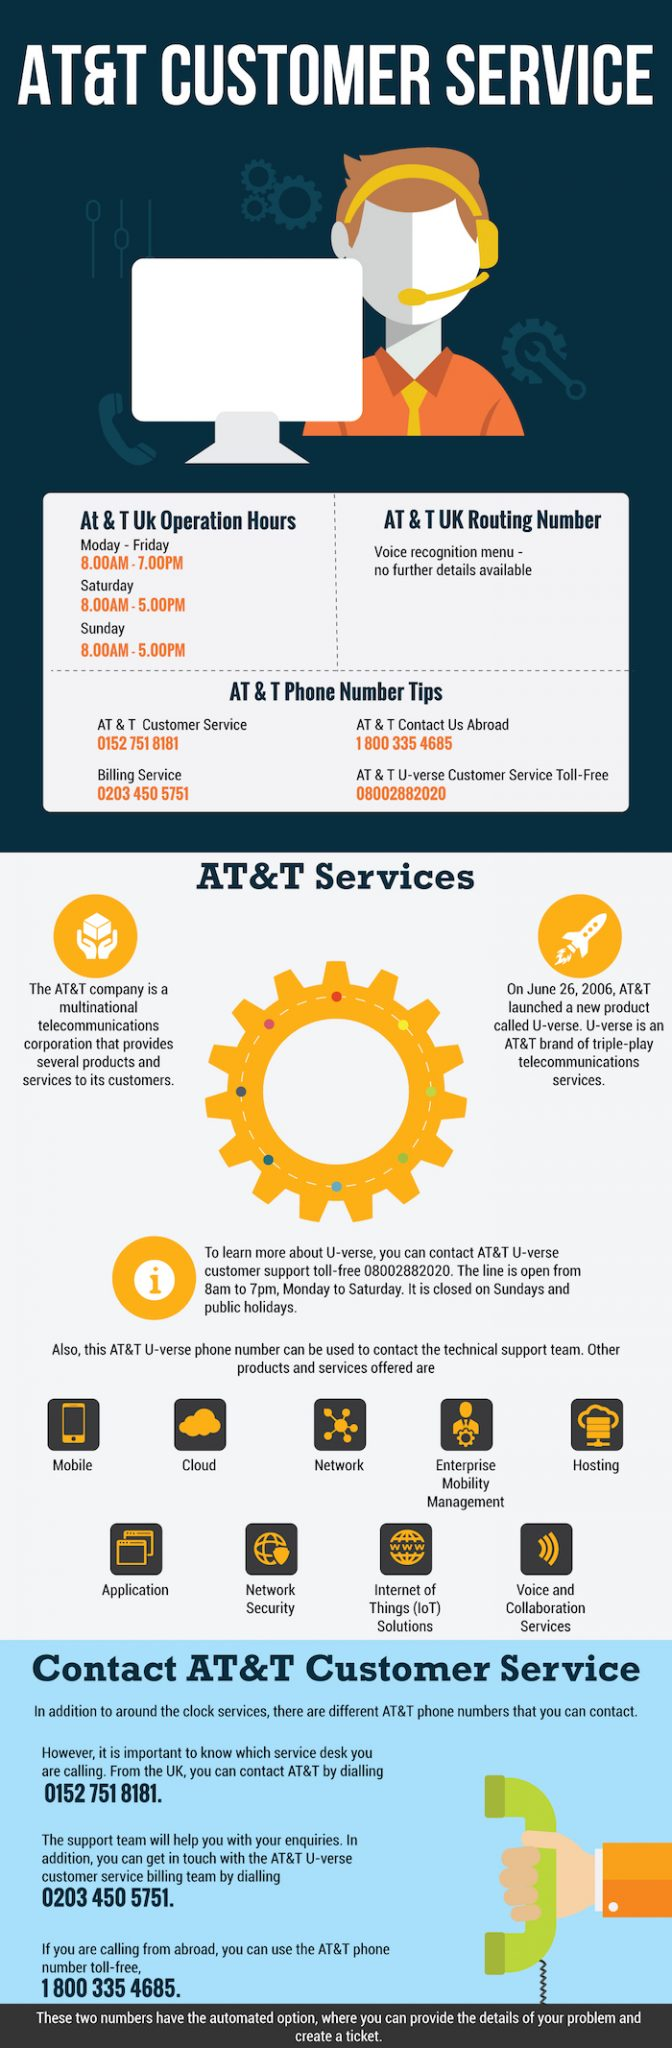 at&t customer service numbers 08443069106 - 24/7 helpline contact